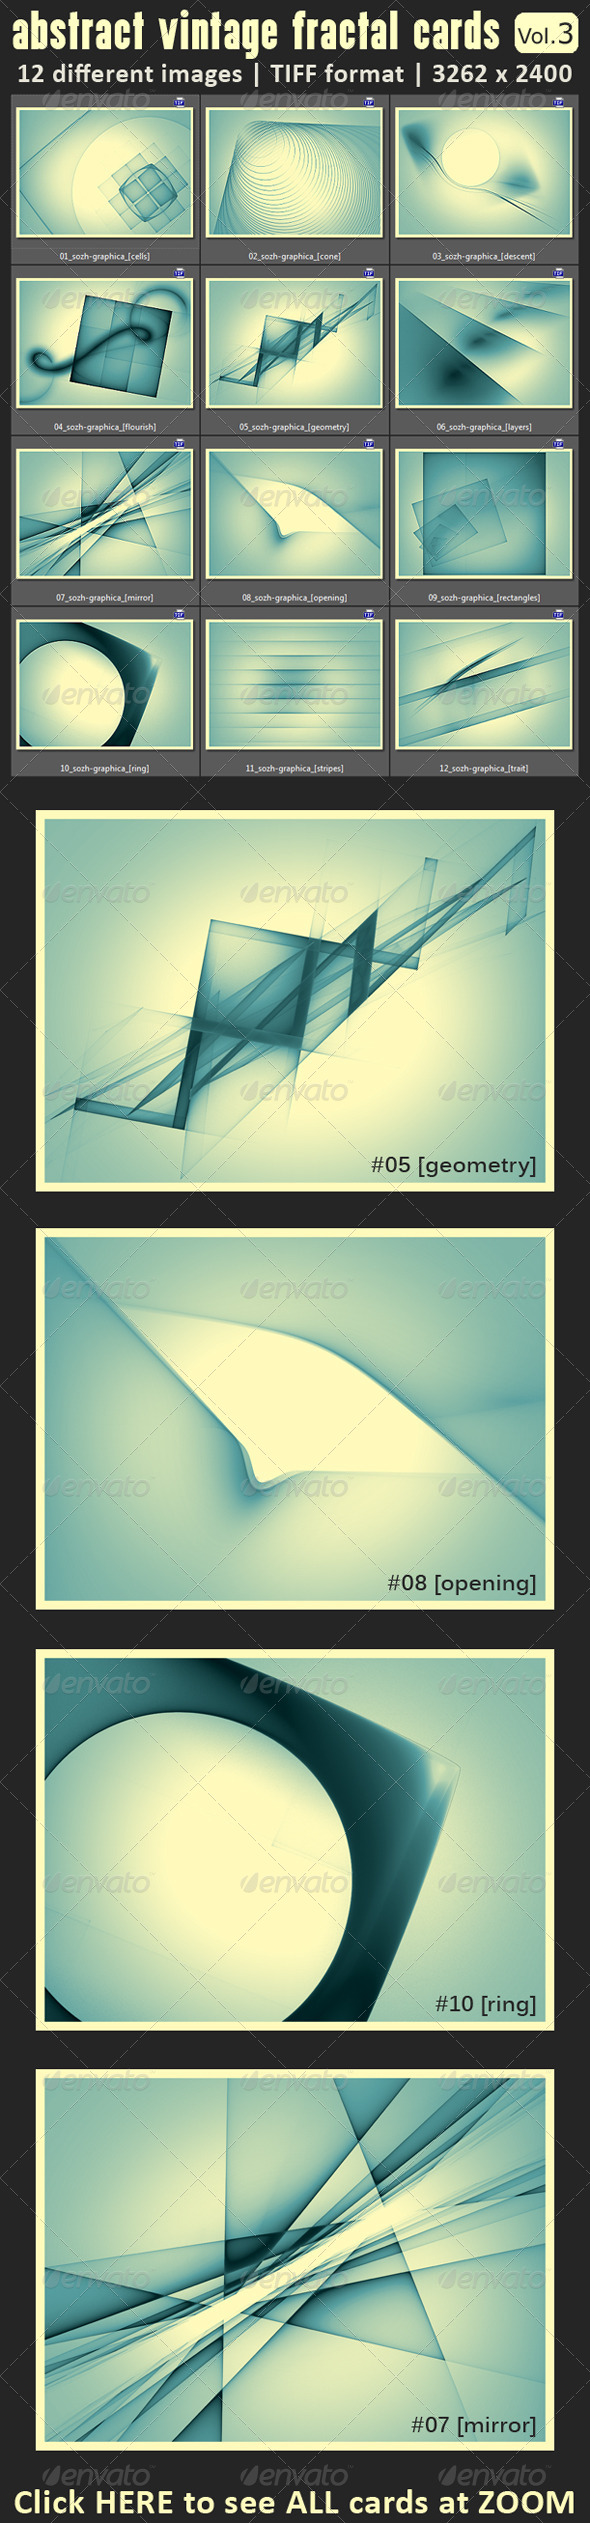 GraphicRiver 12 Abstract Fractal Vintage Cards 6612327